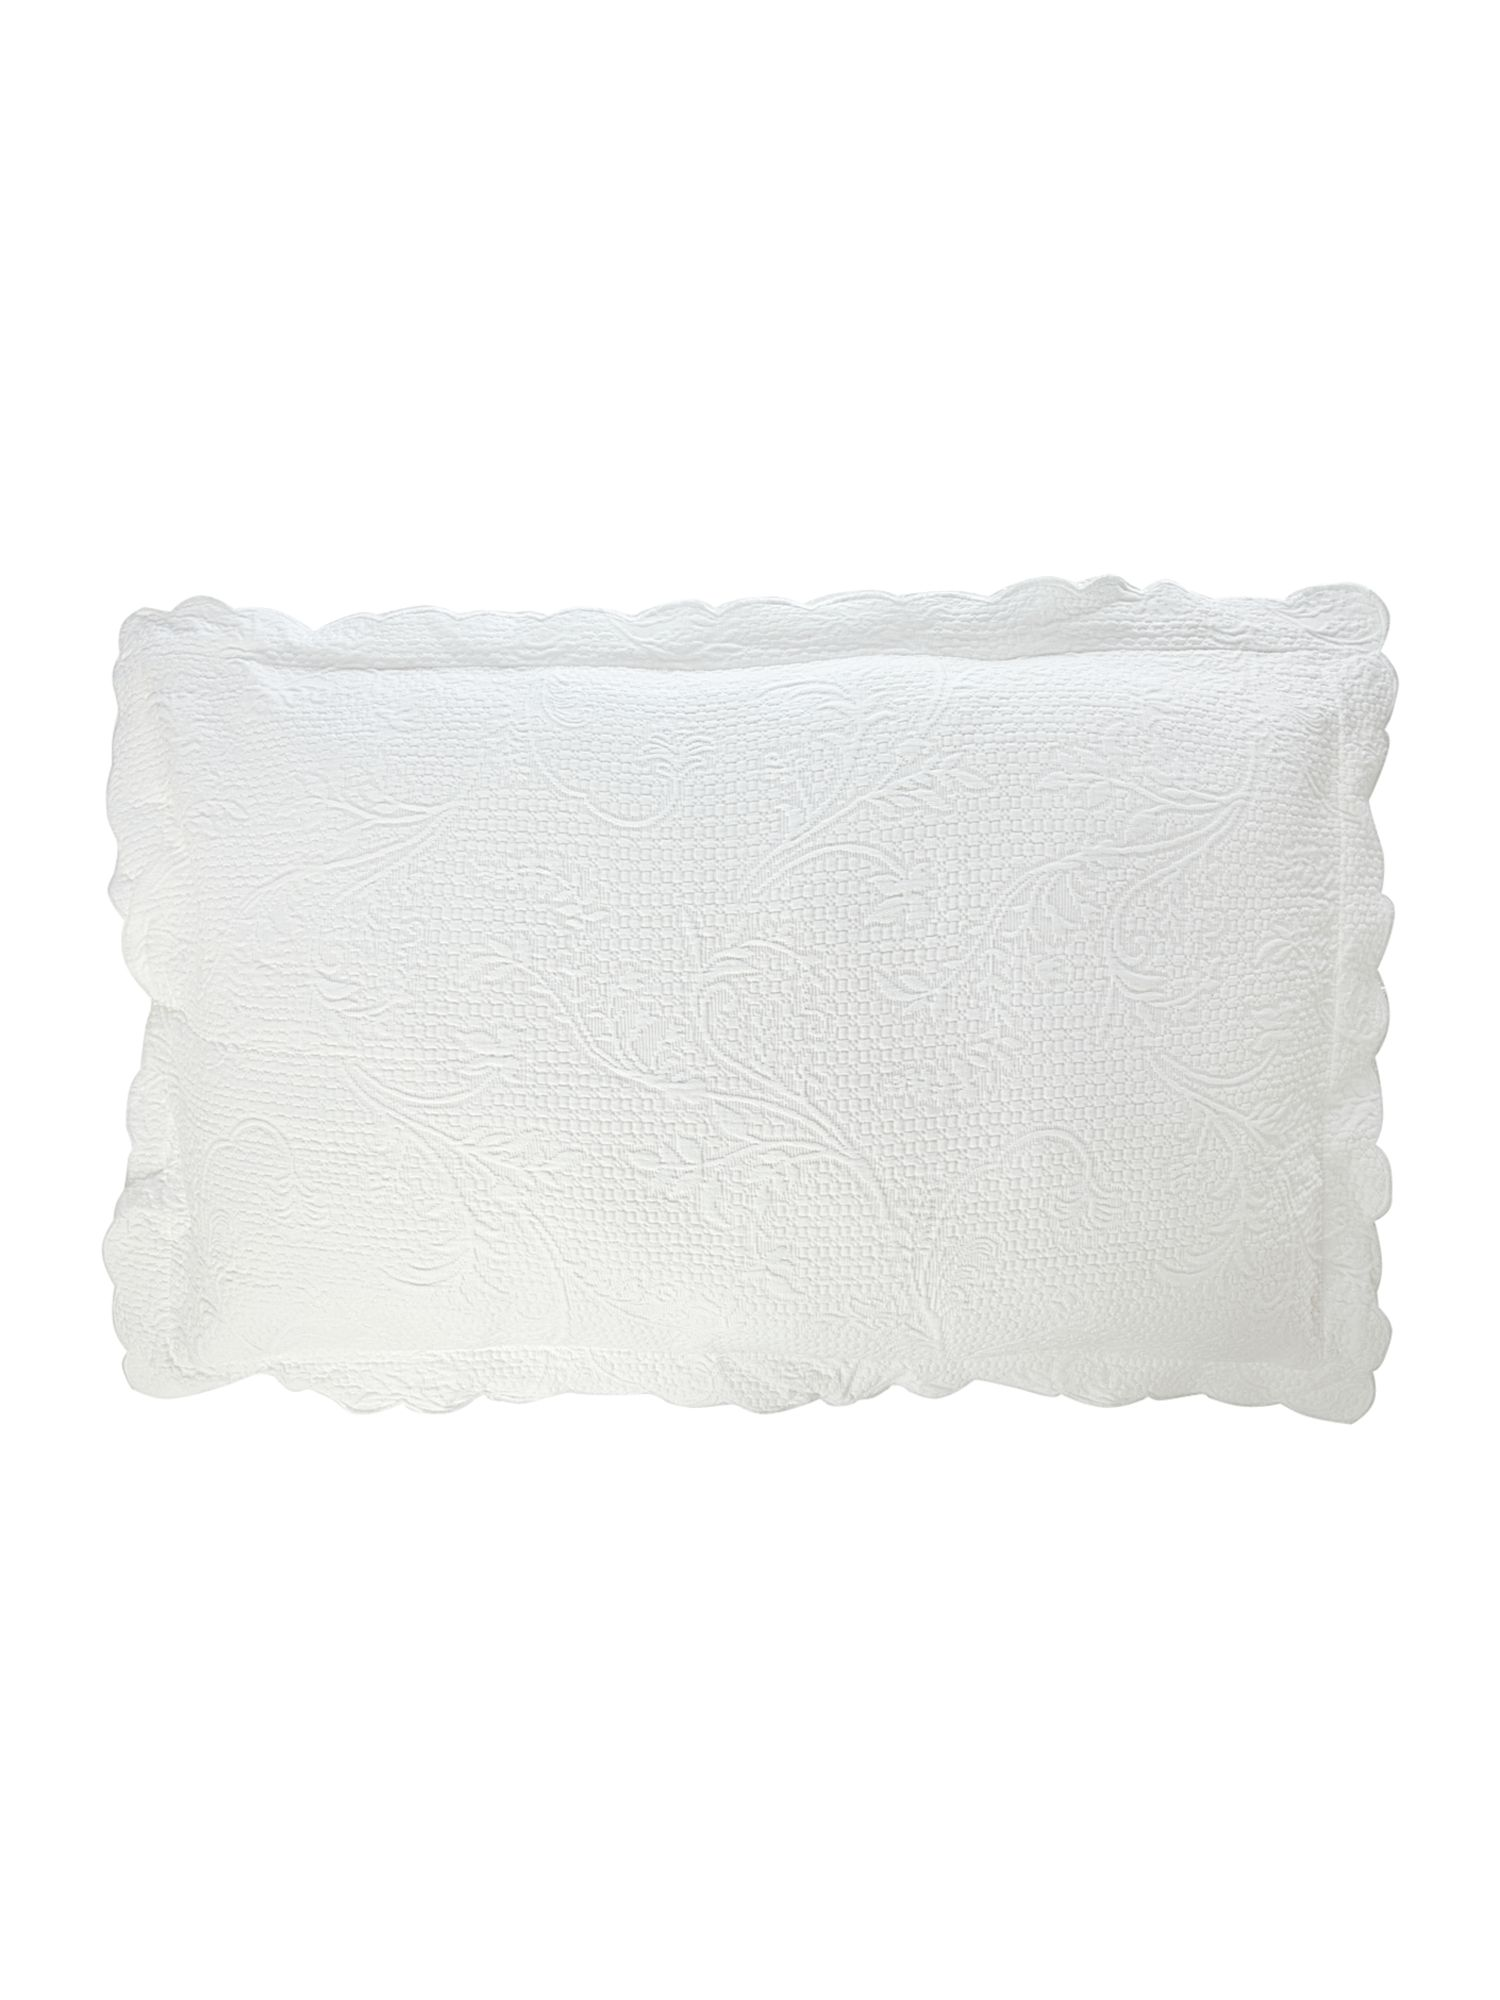 Matelasse pillowsham